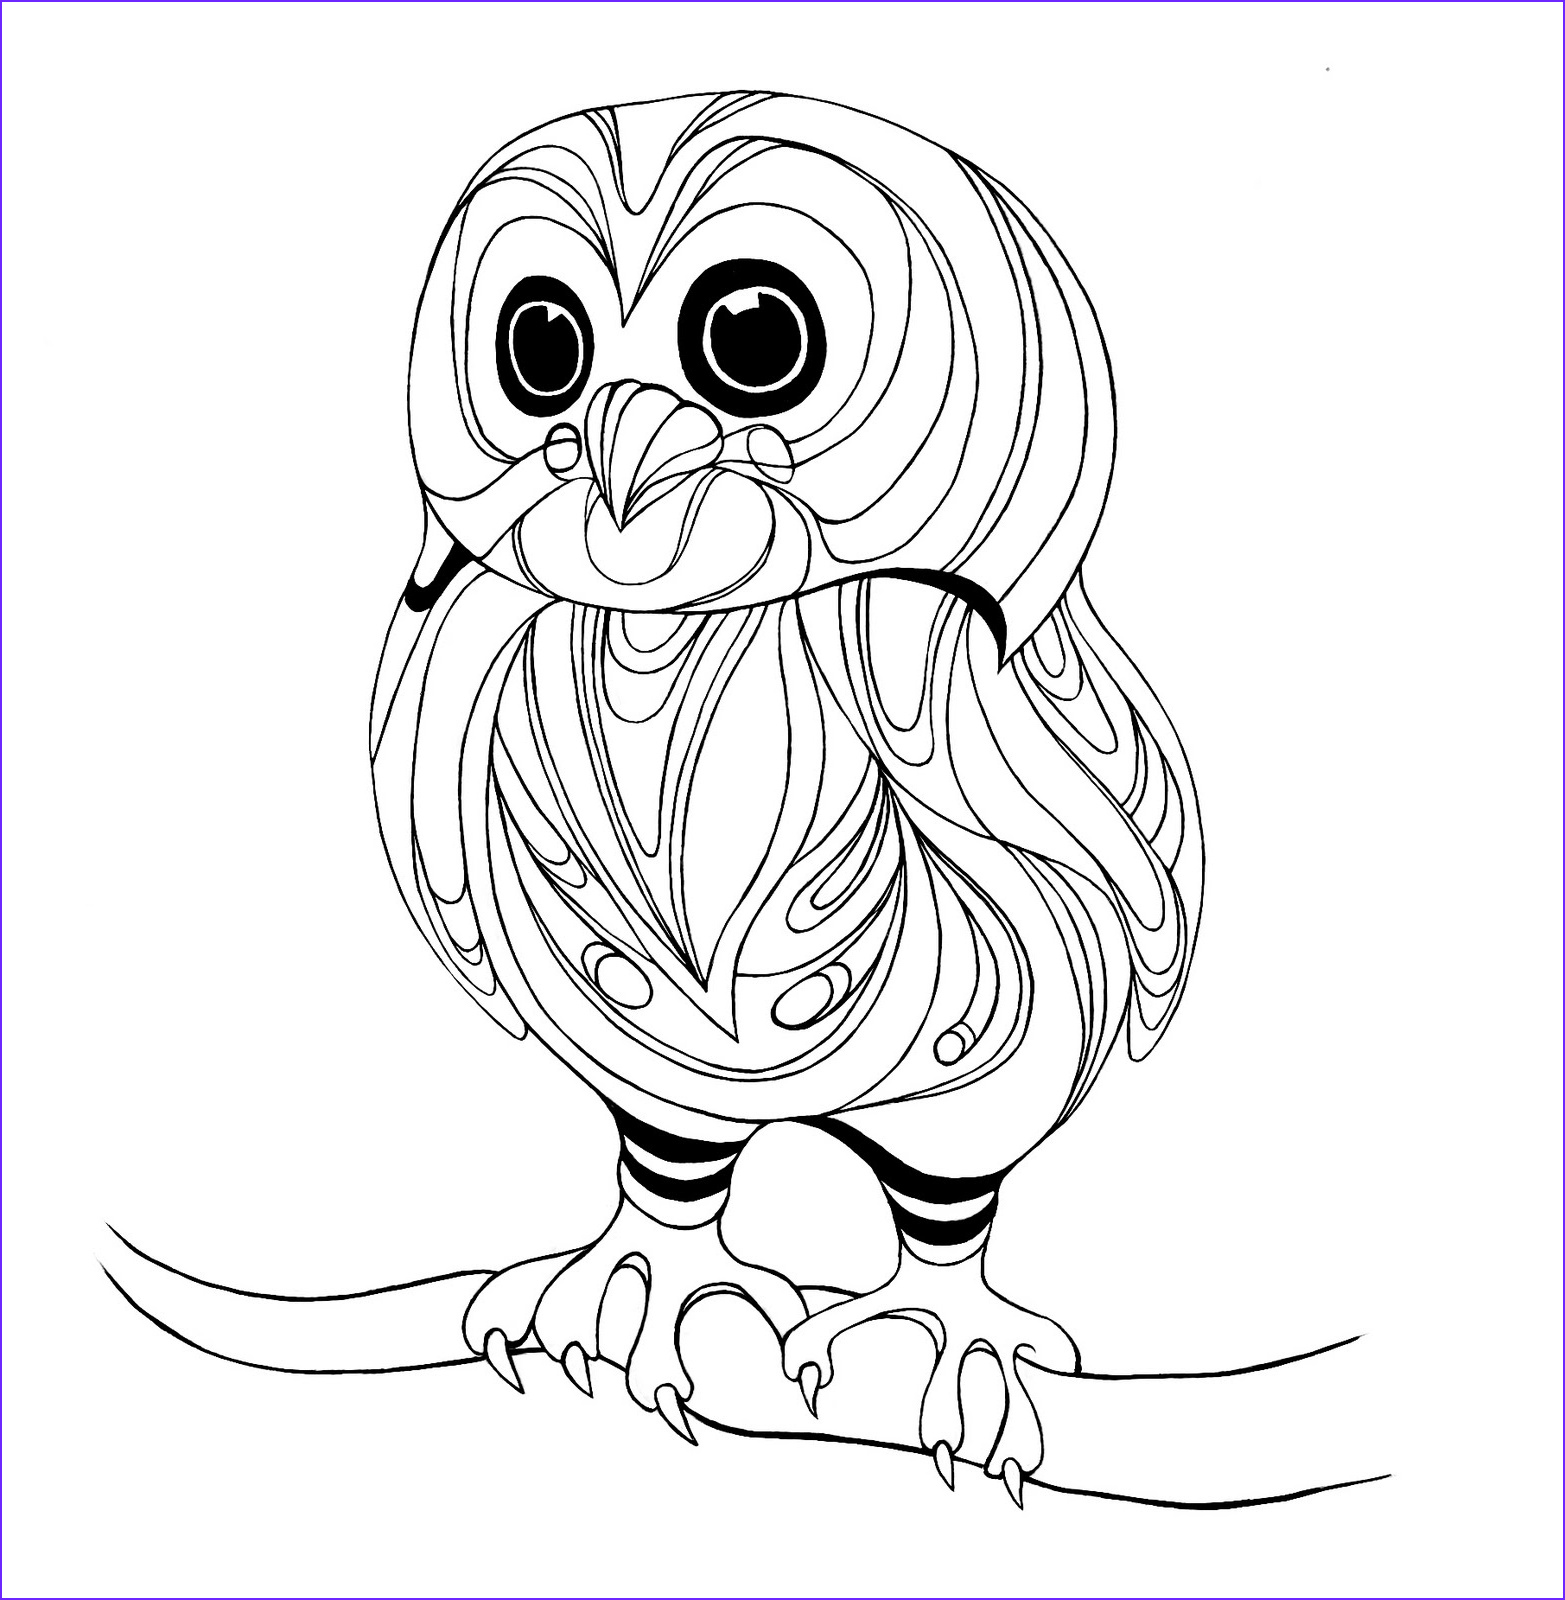 Coloring Picture Of Owls Cool Photos Owls to Color On Pinterest